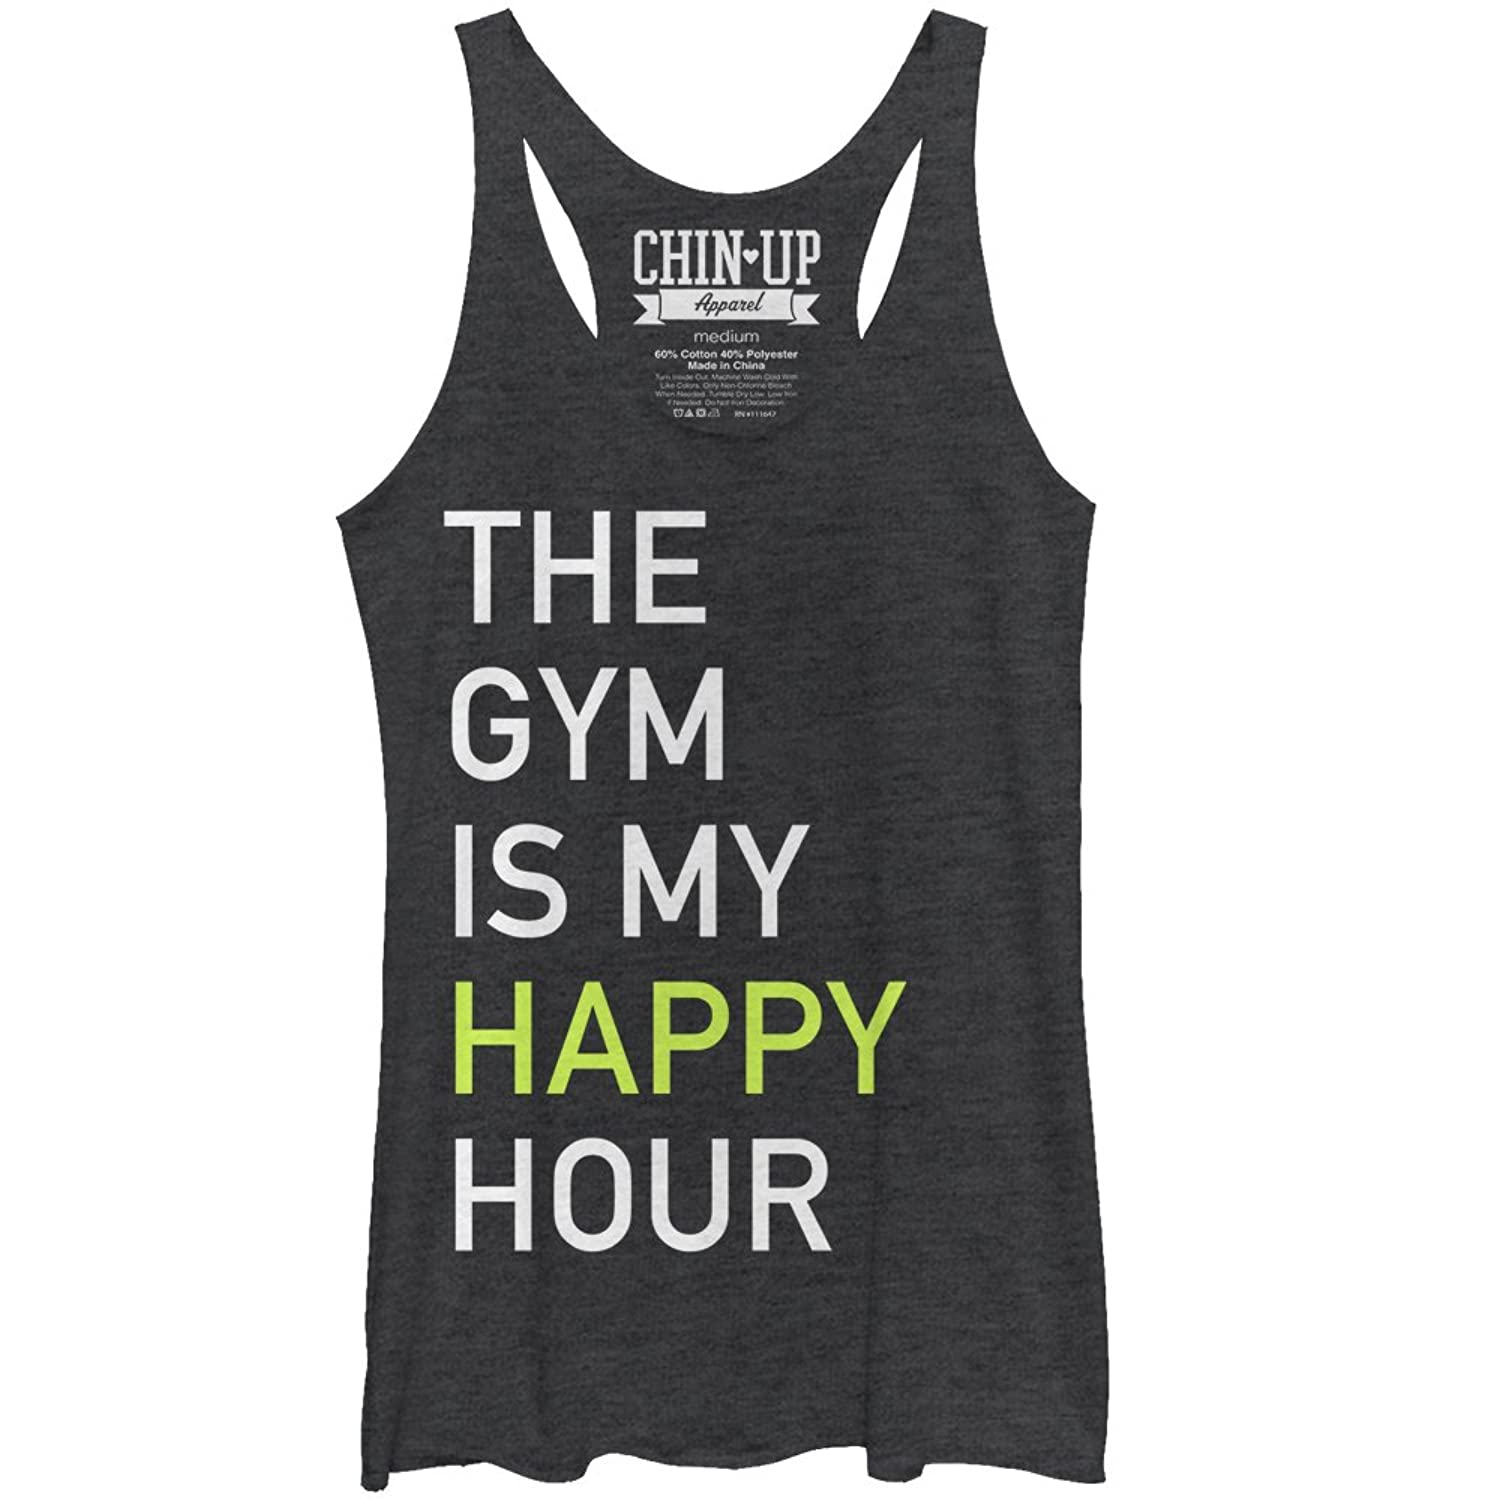 CHIN UP Gym Happy Hour Womens Graphic Racerback Tank